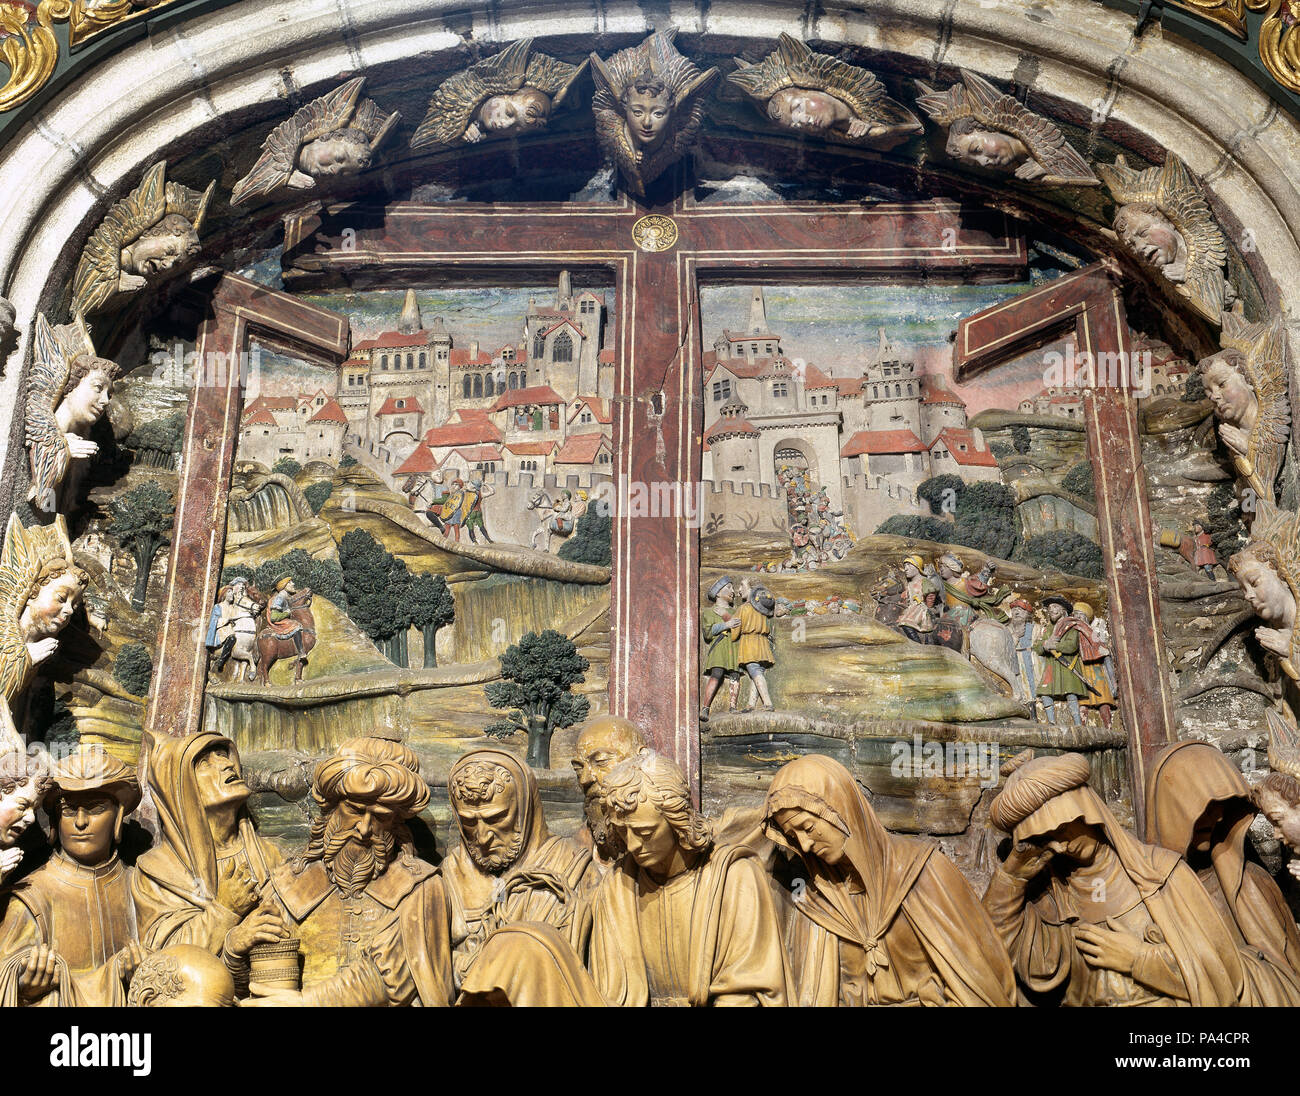 Spain. Galicia. Santiago de Compostela Cathedral. Chapel of Piety or Chaple of the Holy Cross or Chapel of Mondragon. Terracotta relief of Lamentation over Dead Christ, sculpted by Renaissance sculptor Miguel Perrin (1498 ?-1552) in 1526. Detail. Stock Photo